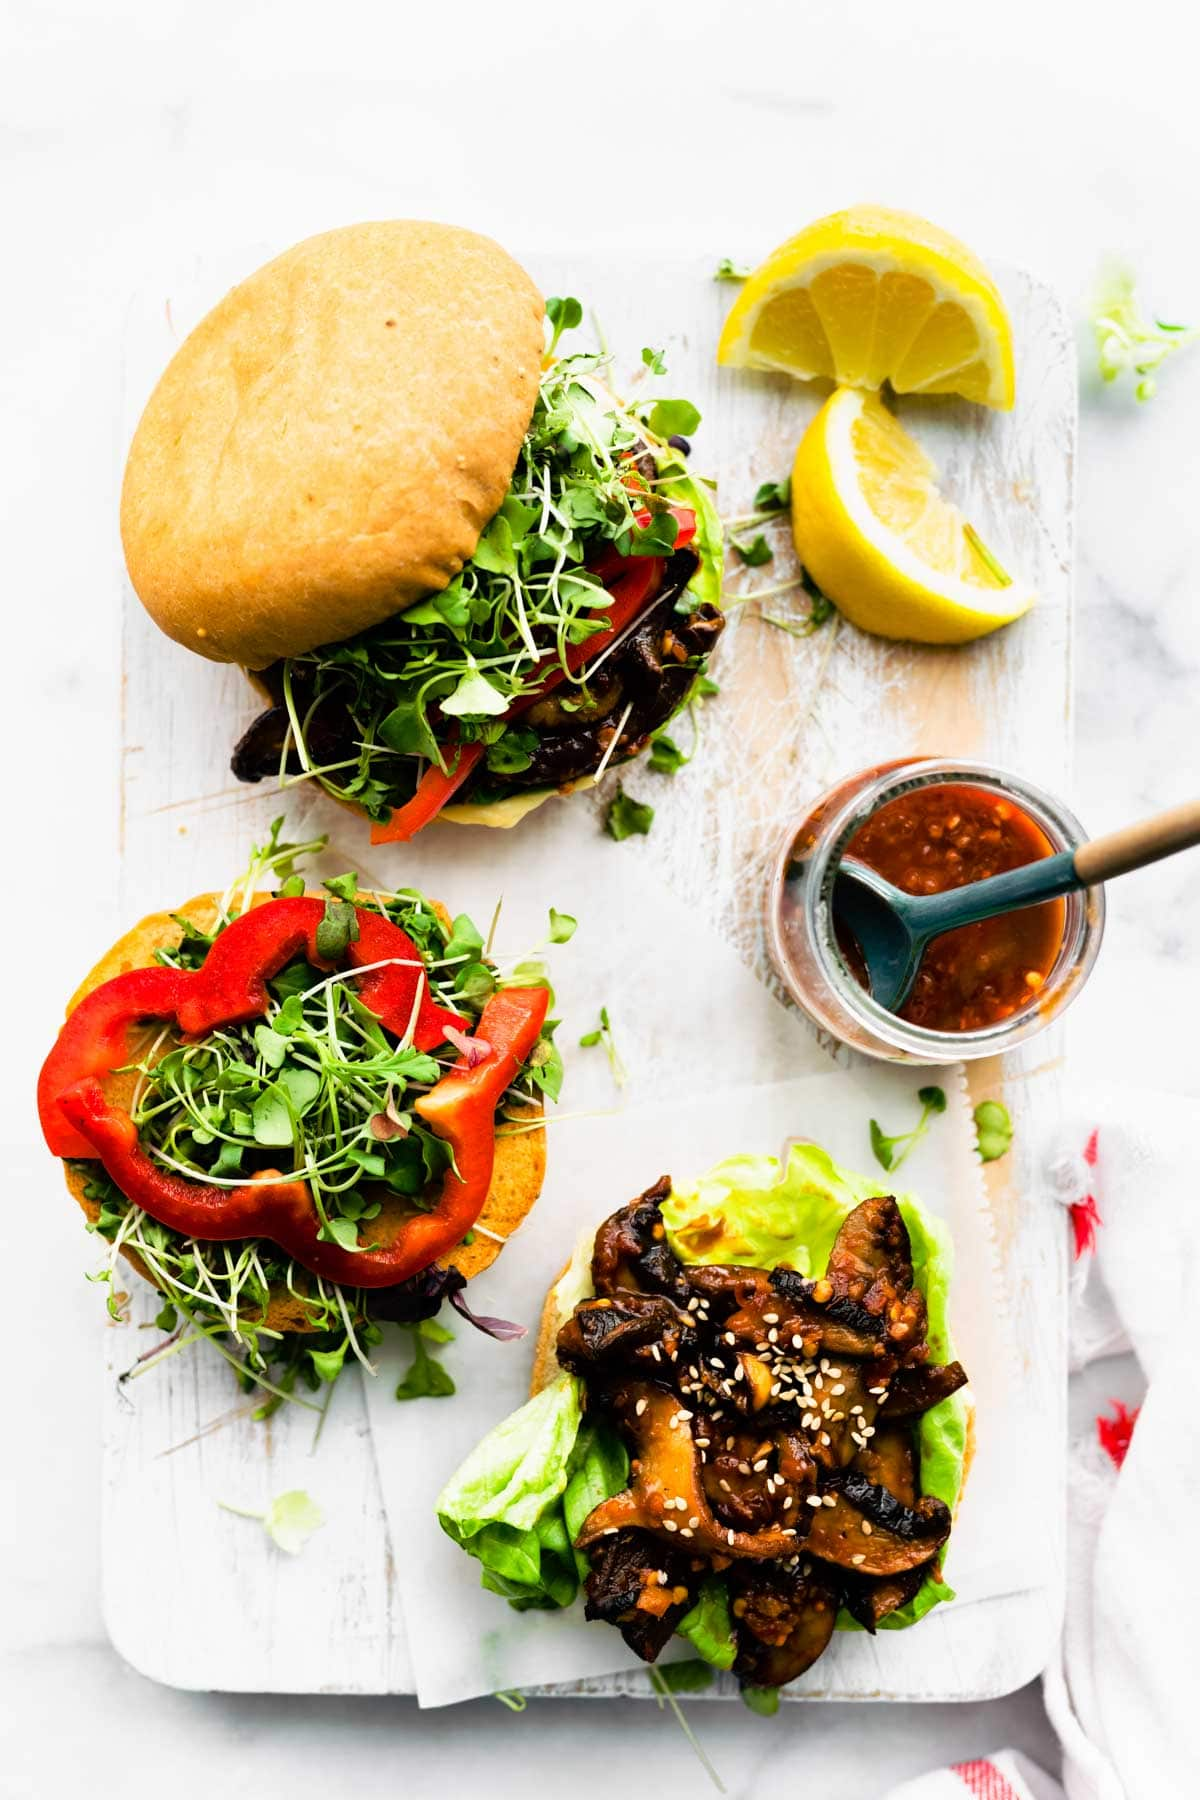 open face mushroom burger with sauce in a container and lemon on side